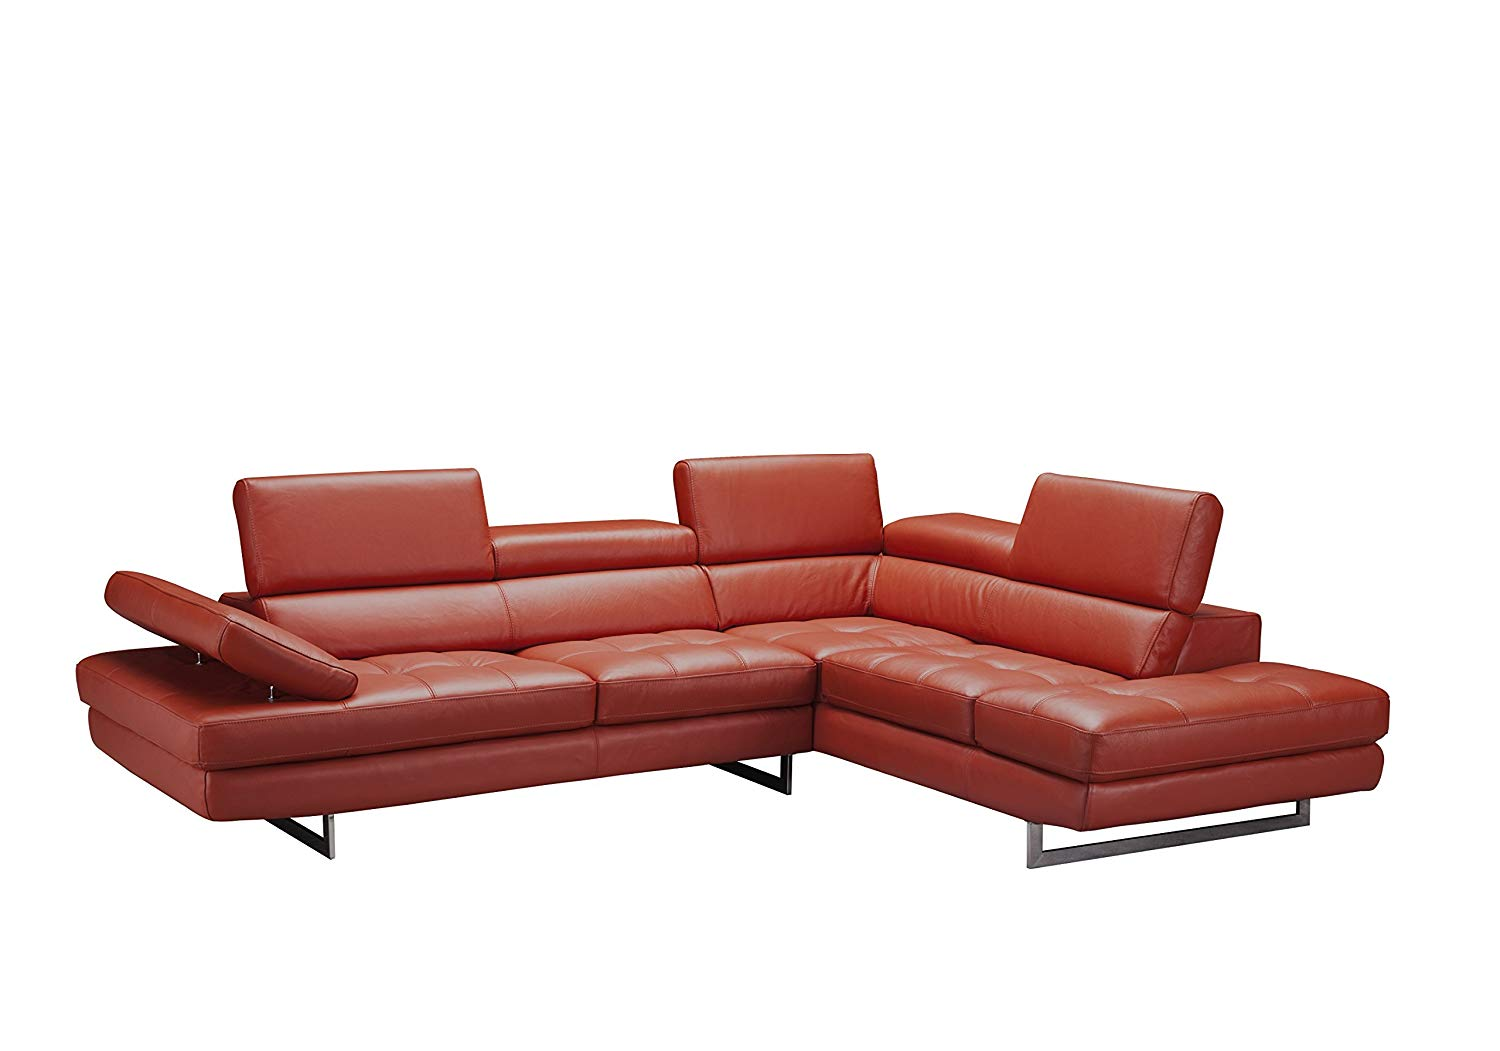 J and M Furniture 188553-RHFC Venus Rhf Chaise Premium Leather Sectional